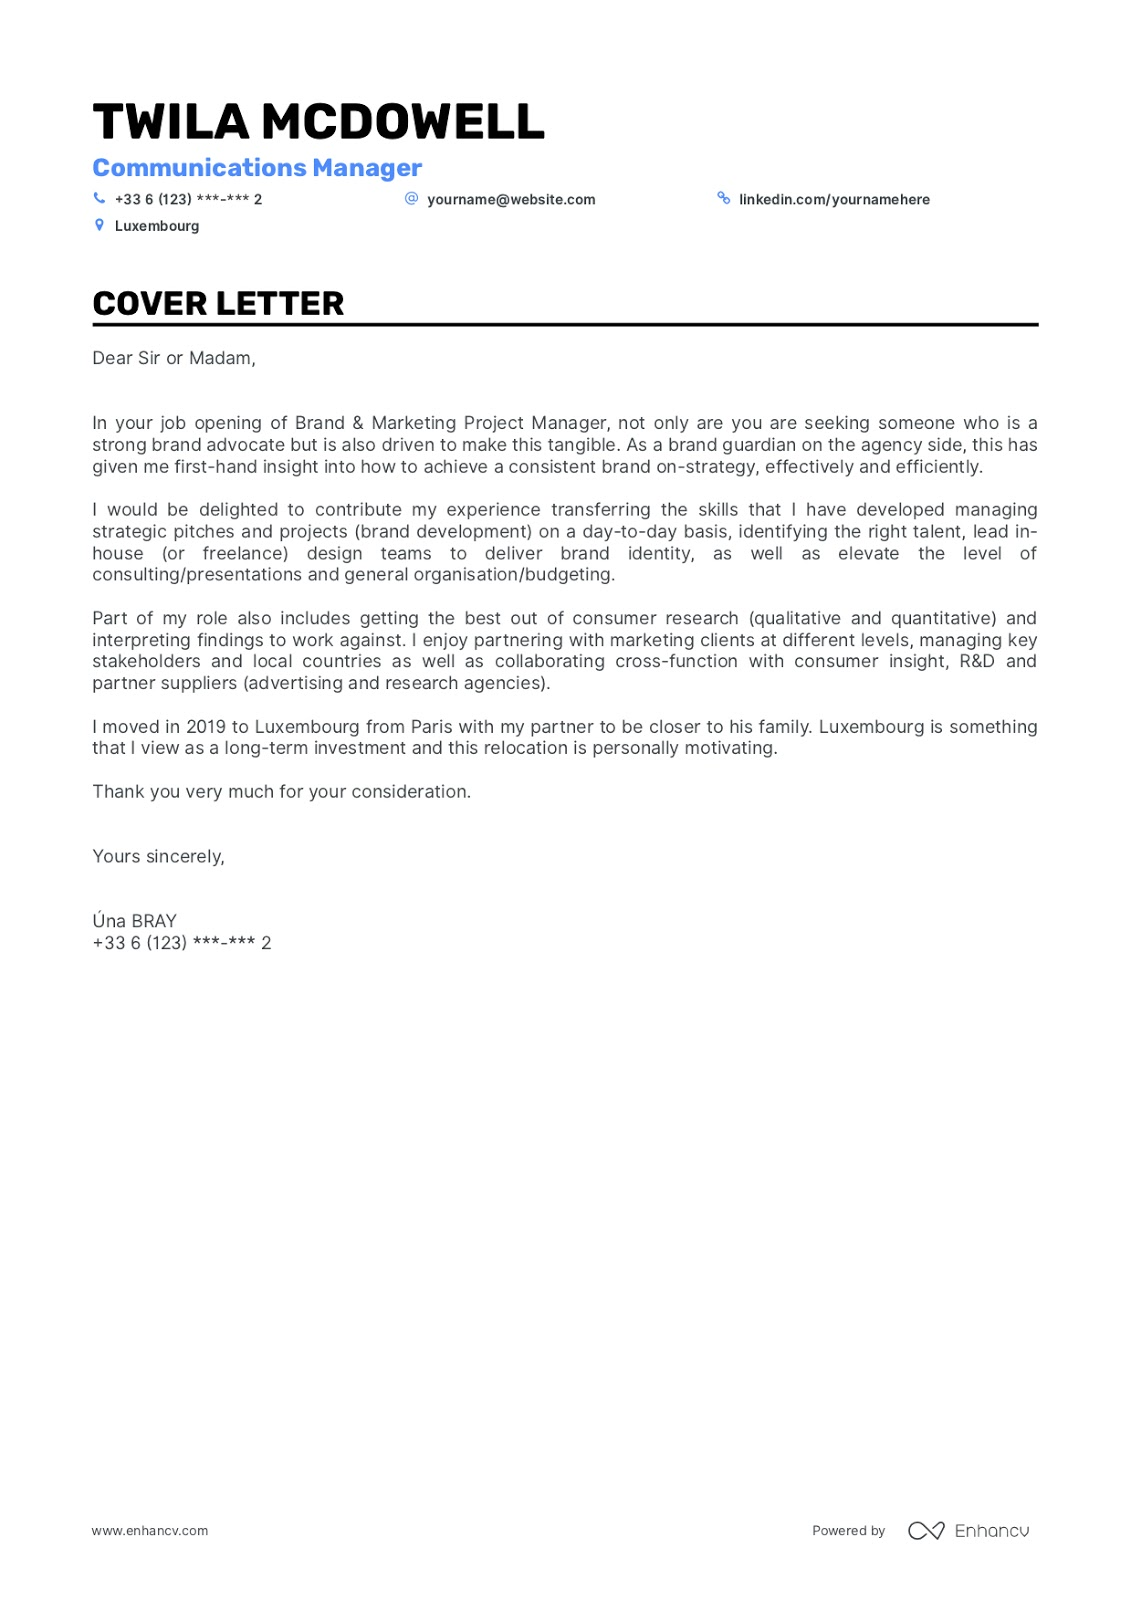 Cover Letter Design 5 Tips Examples For Success